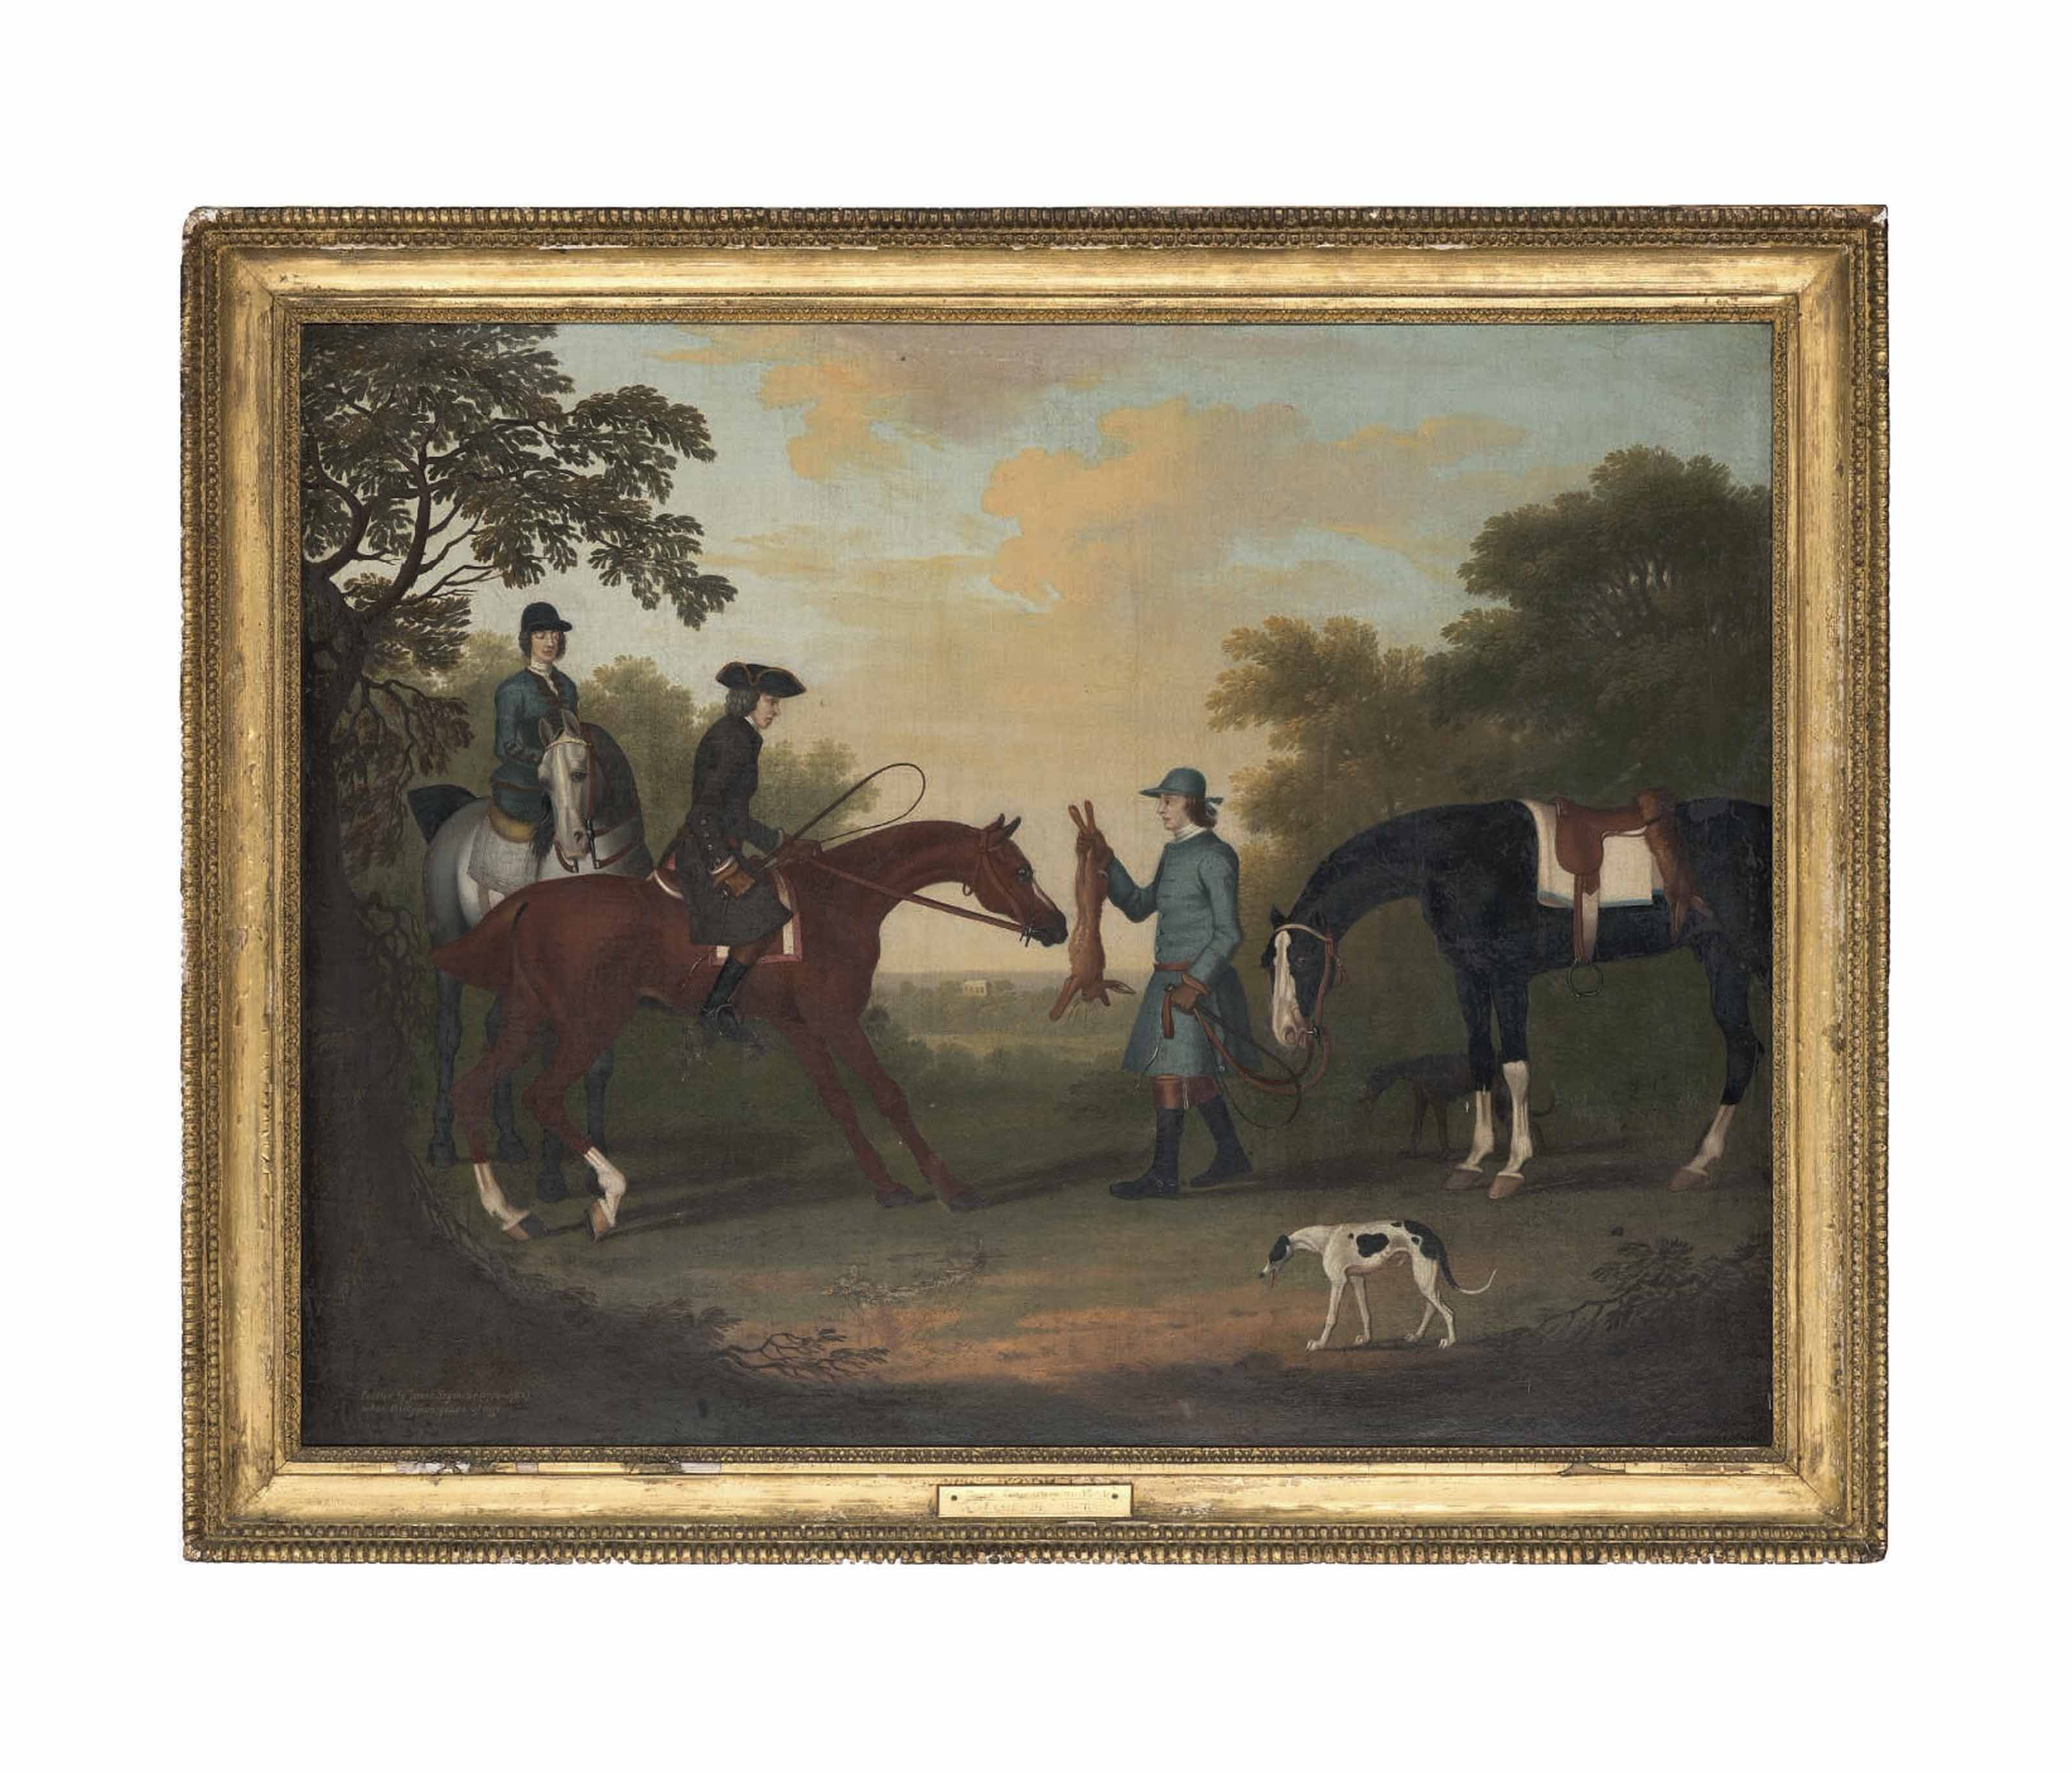 A gentleman and lady on their hunters, with a groom holding a hare, with two greyhounds and a hunter, in a wooded landscape